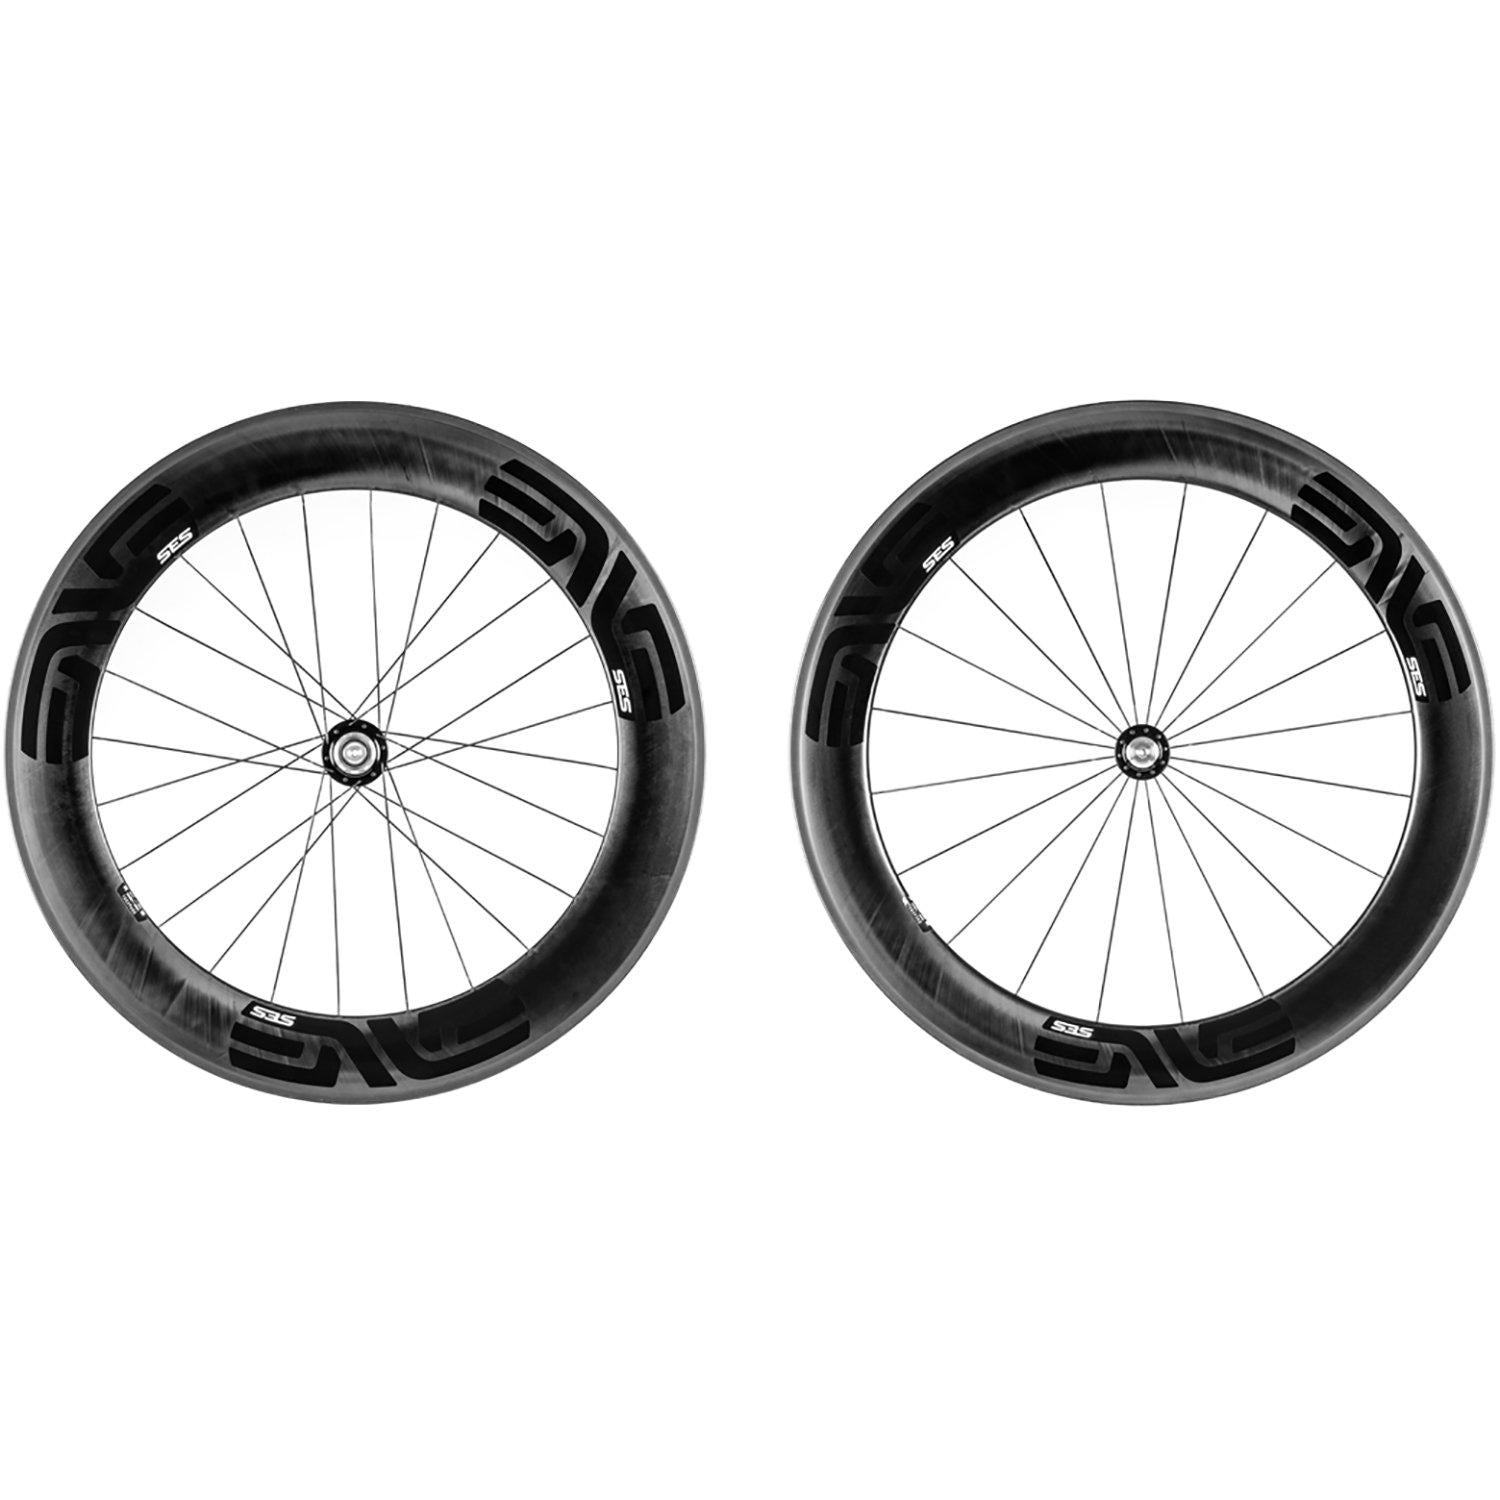 ENVE-ENVE SES 7.8 Wheelset - Rim Brake-Chris King R45 Black Hub-Clincher/Shimano/Ceramic-EN00781003104014-saddleback-elite-performance-cycling